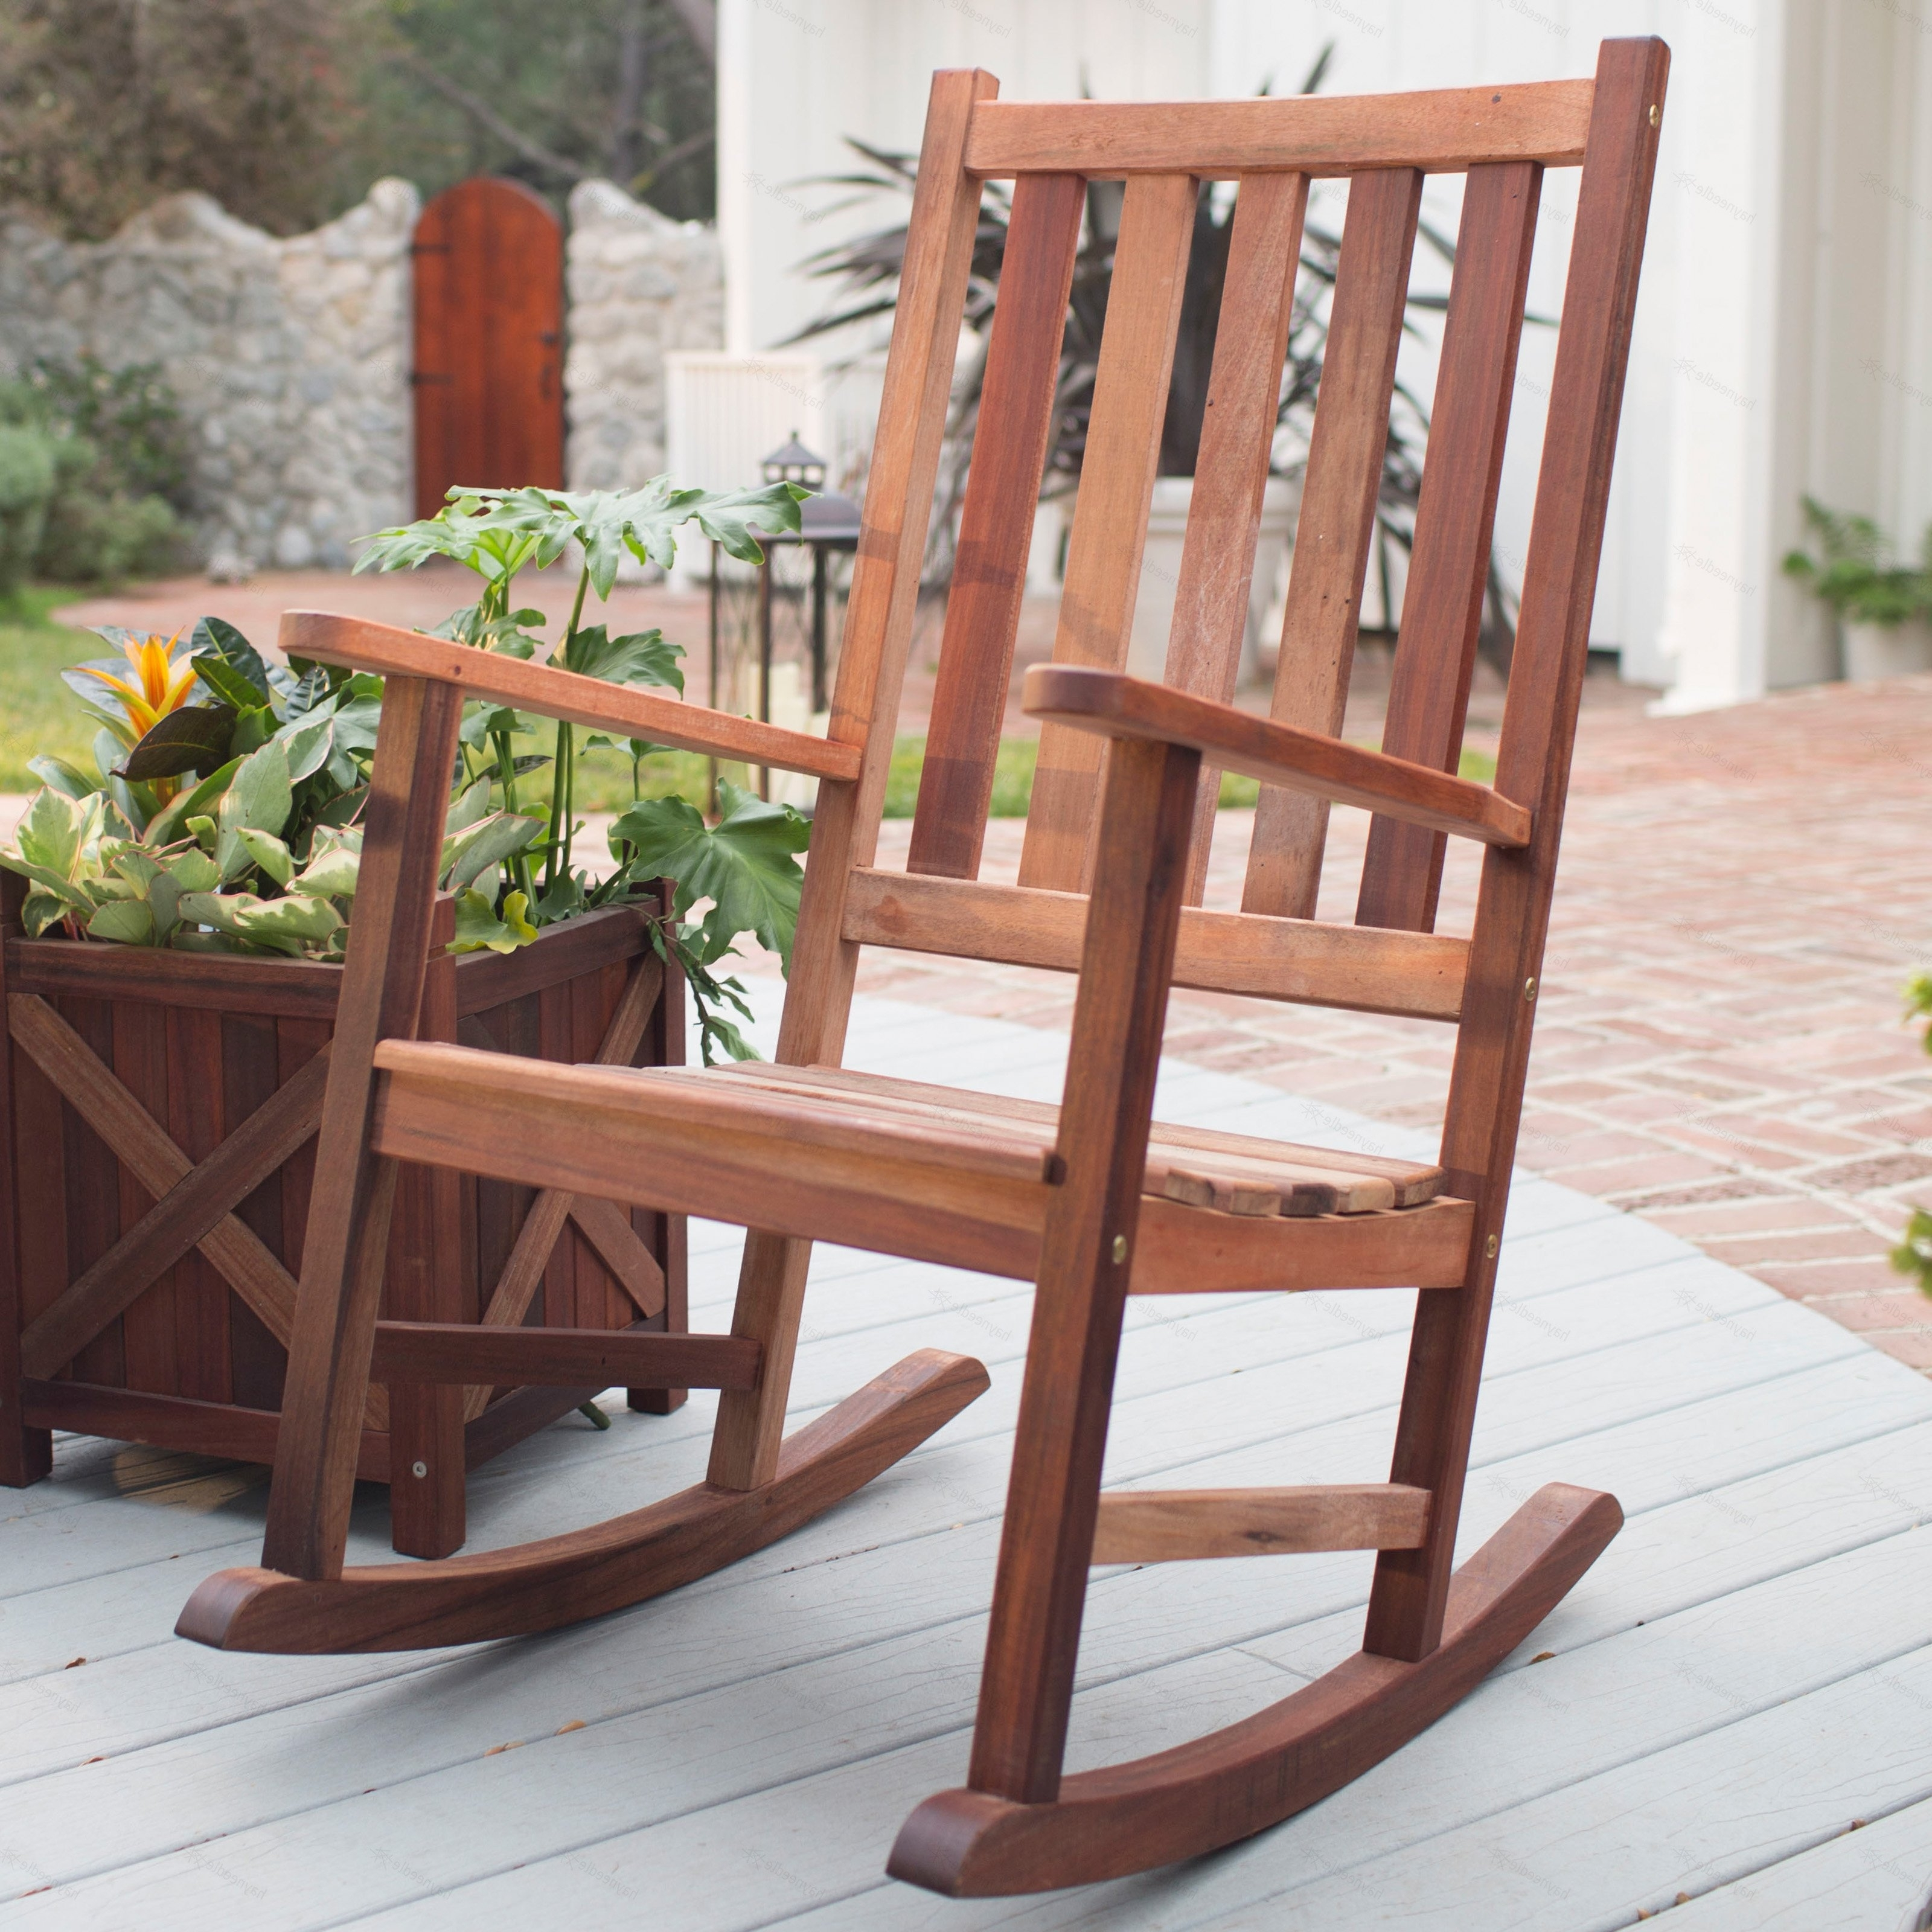 Most Recently Released Patio & Garden : Outdoor Rocking Chair Cushions Cracker Barrel In Rocking Chair Cushions For Outdoor (View 13 of 15)